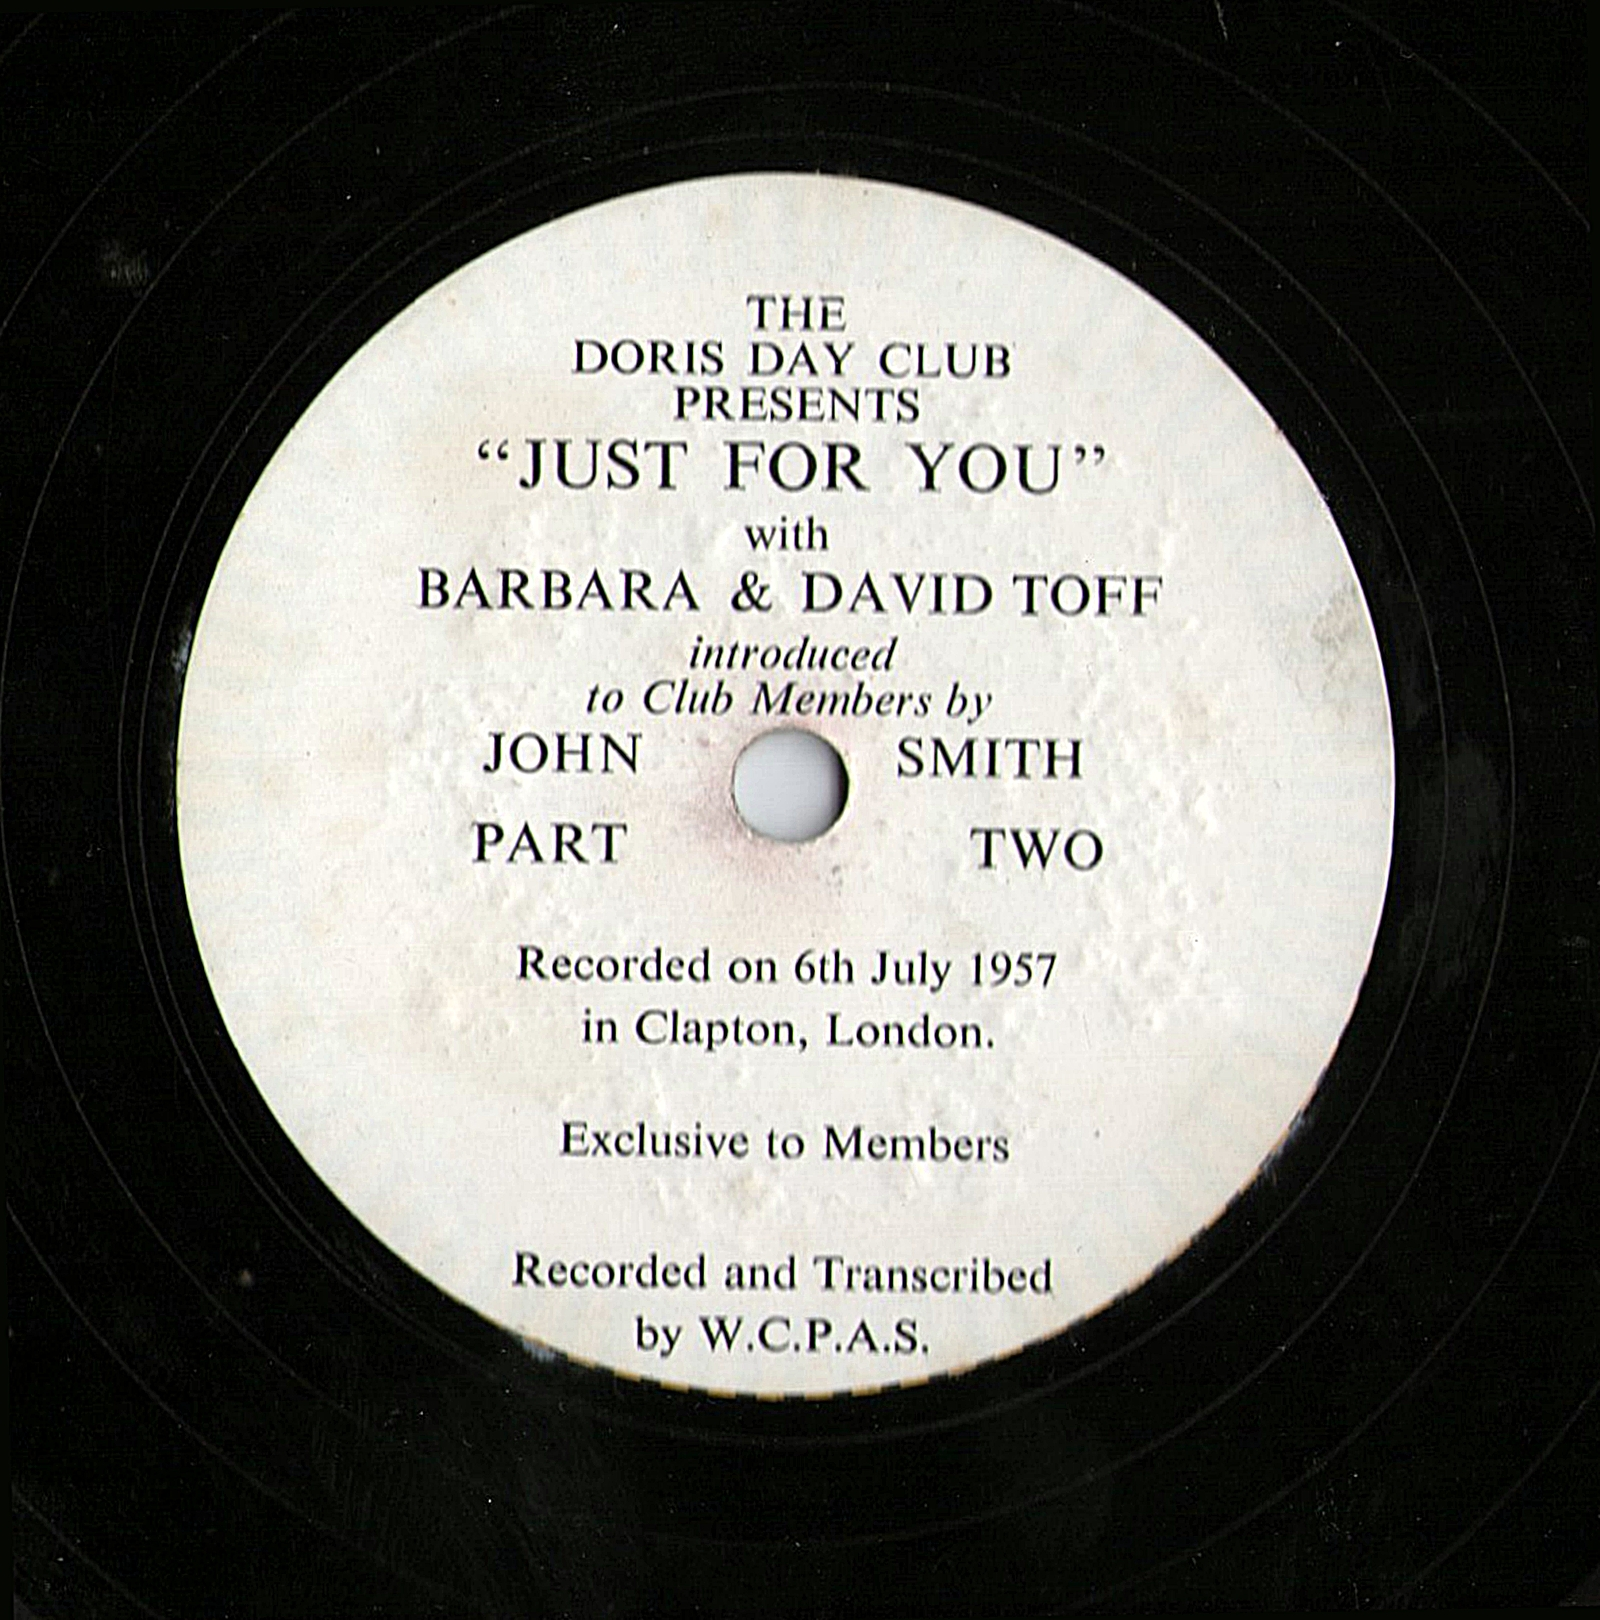 Doris Day Fan Club LP